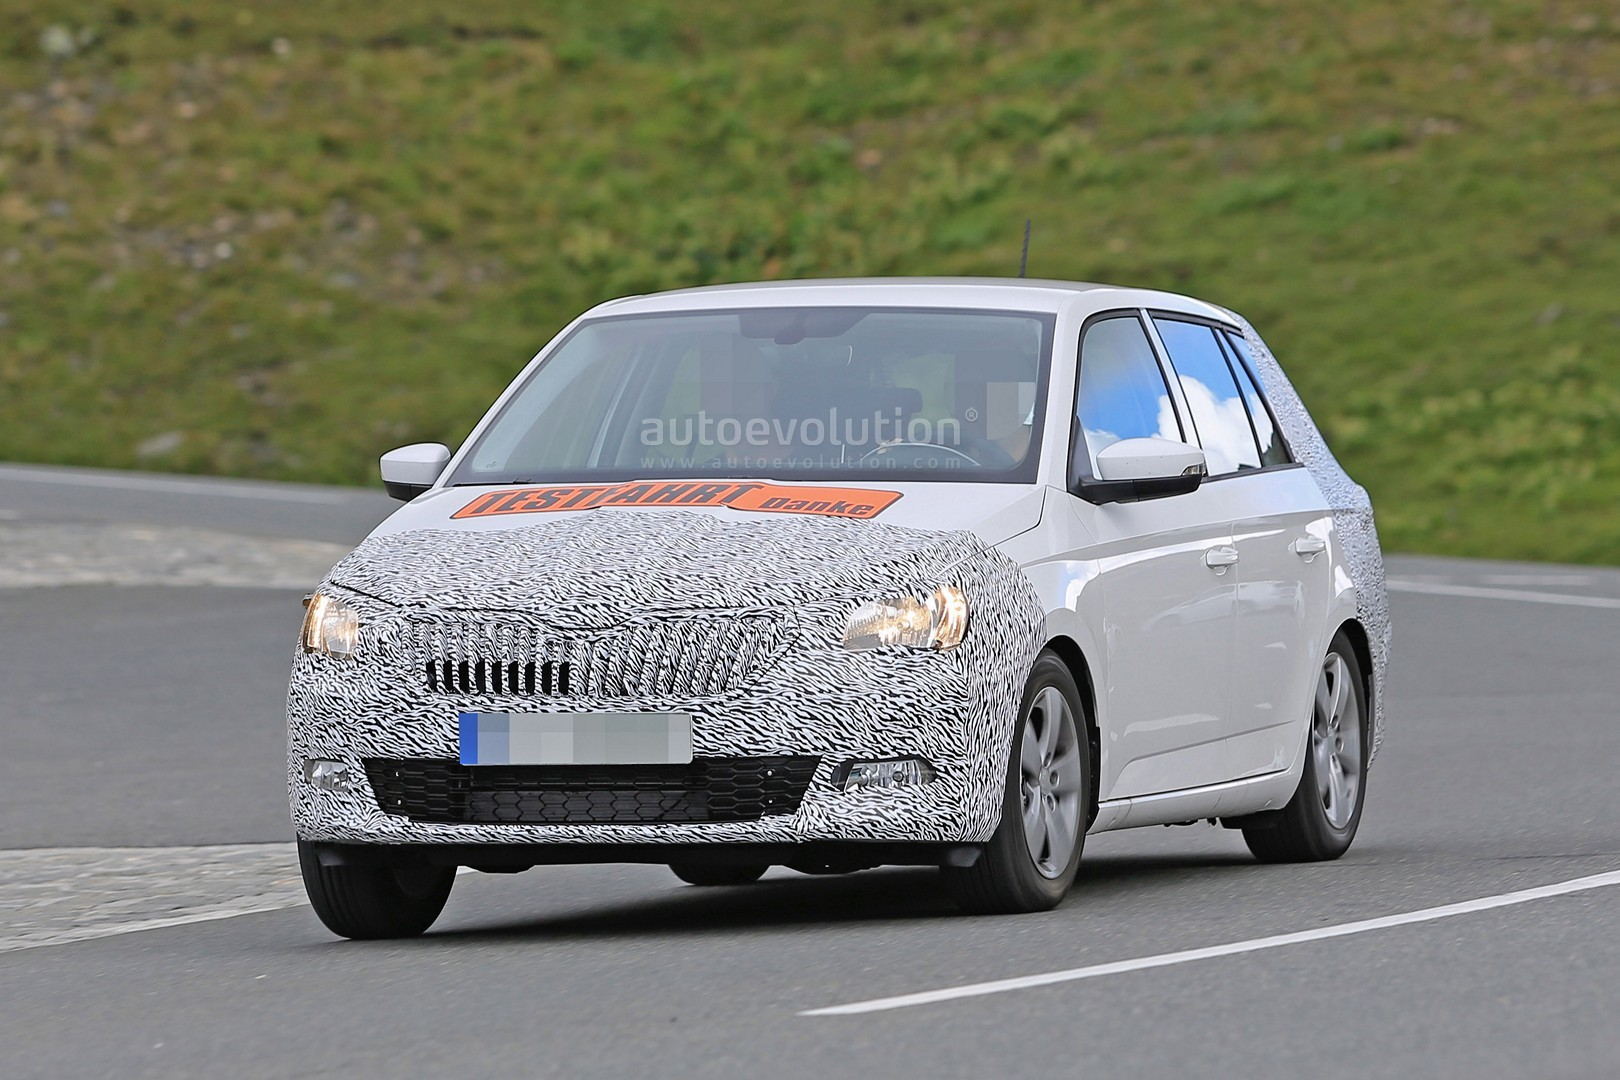 spyshots 2017 skoda fabia facelift has nose radar superb grille autoevolution. Black Bedroom Furniture Sets. Home Design Ideas